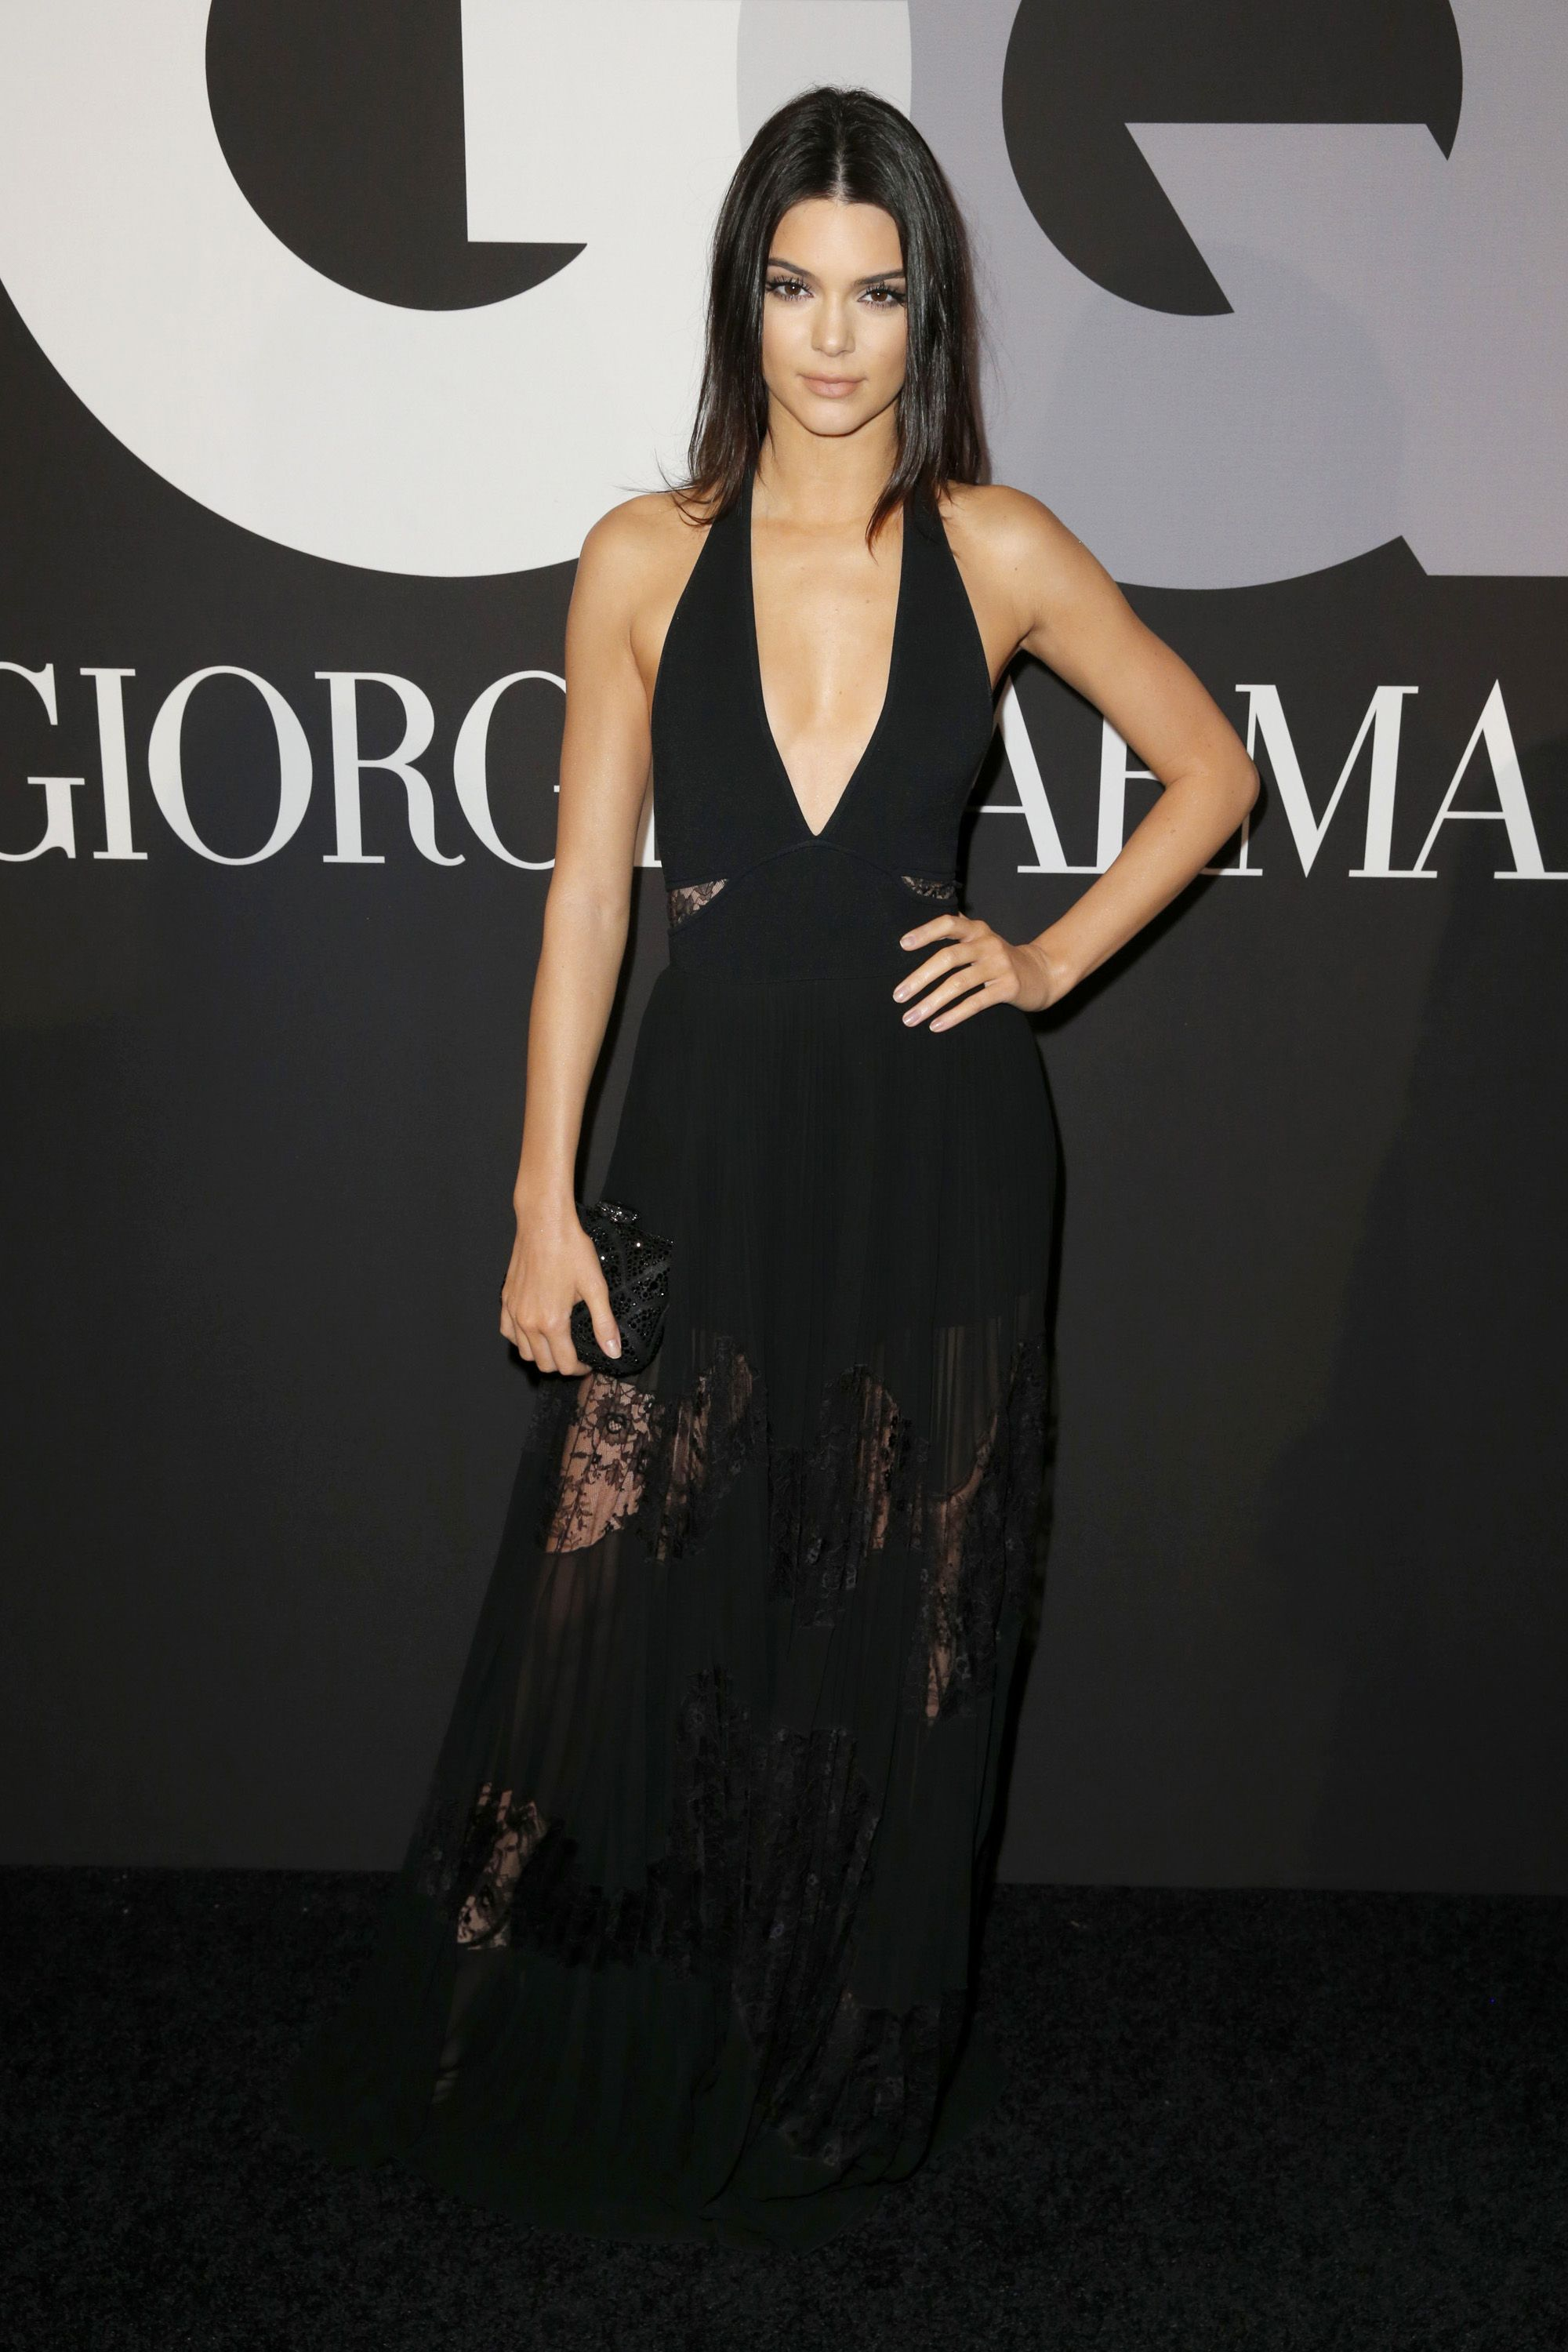 HOLLYWOOD, CA - FEBRUARY 08:  TV personality Kendall Jenner attends GQ and Giorgio Armani Grammys After Party at Hollywood Athletic Club on February 8, 2015 in Hollywood, California.  (Photo by Joe Scarnici/Getty Images for GQ)